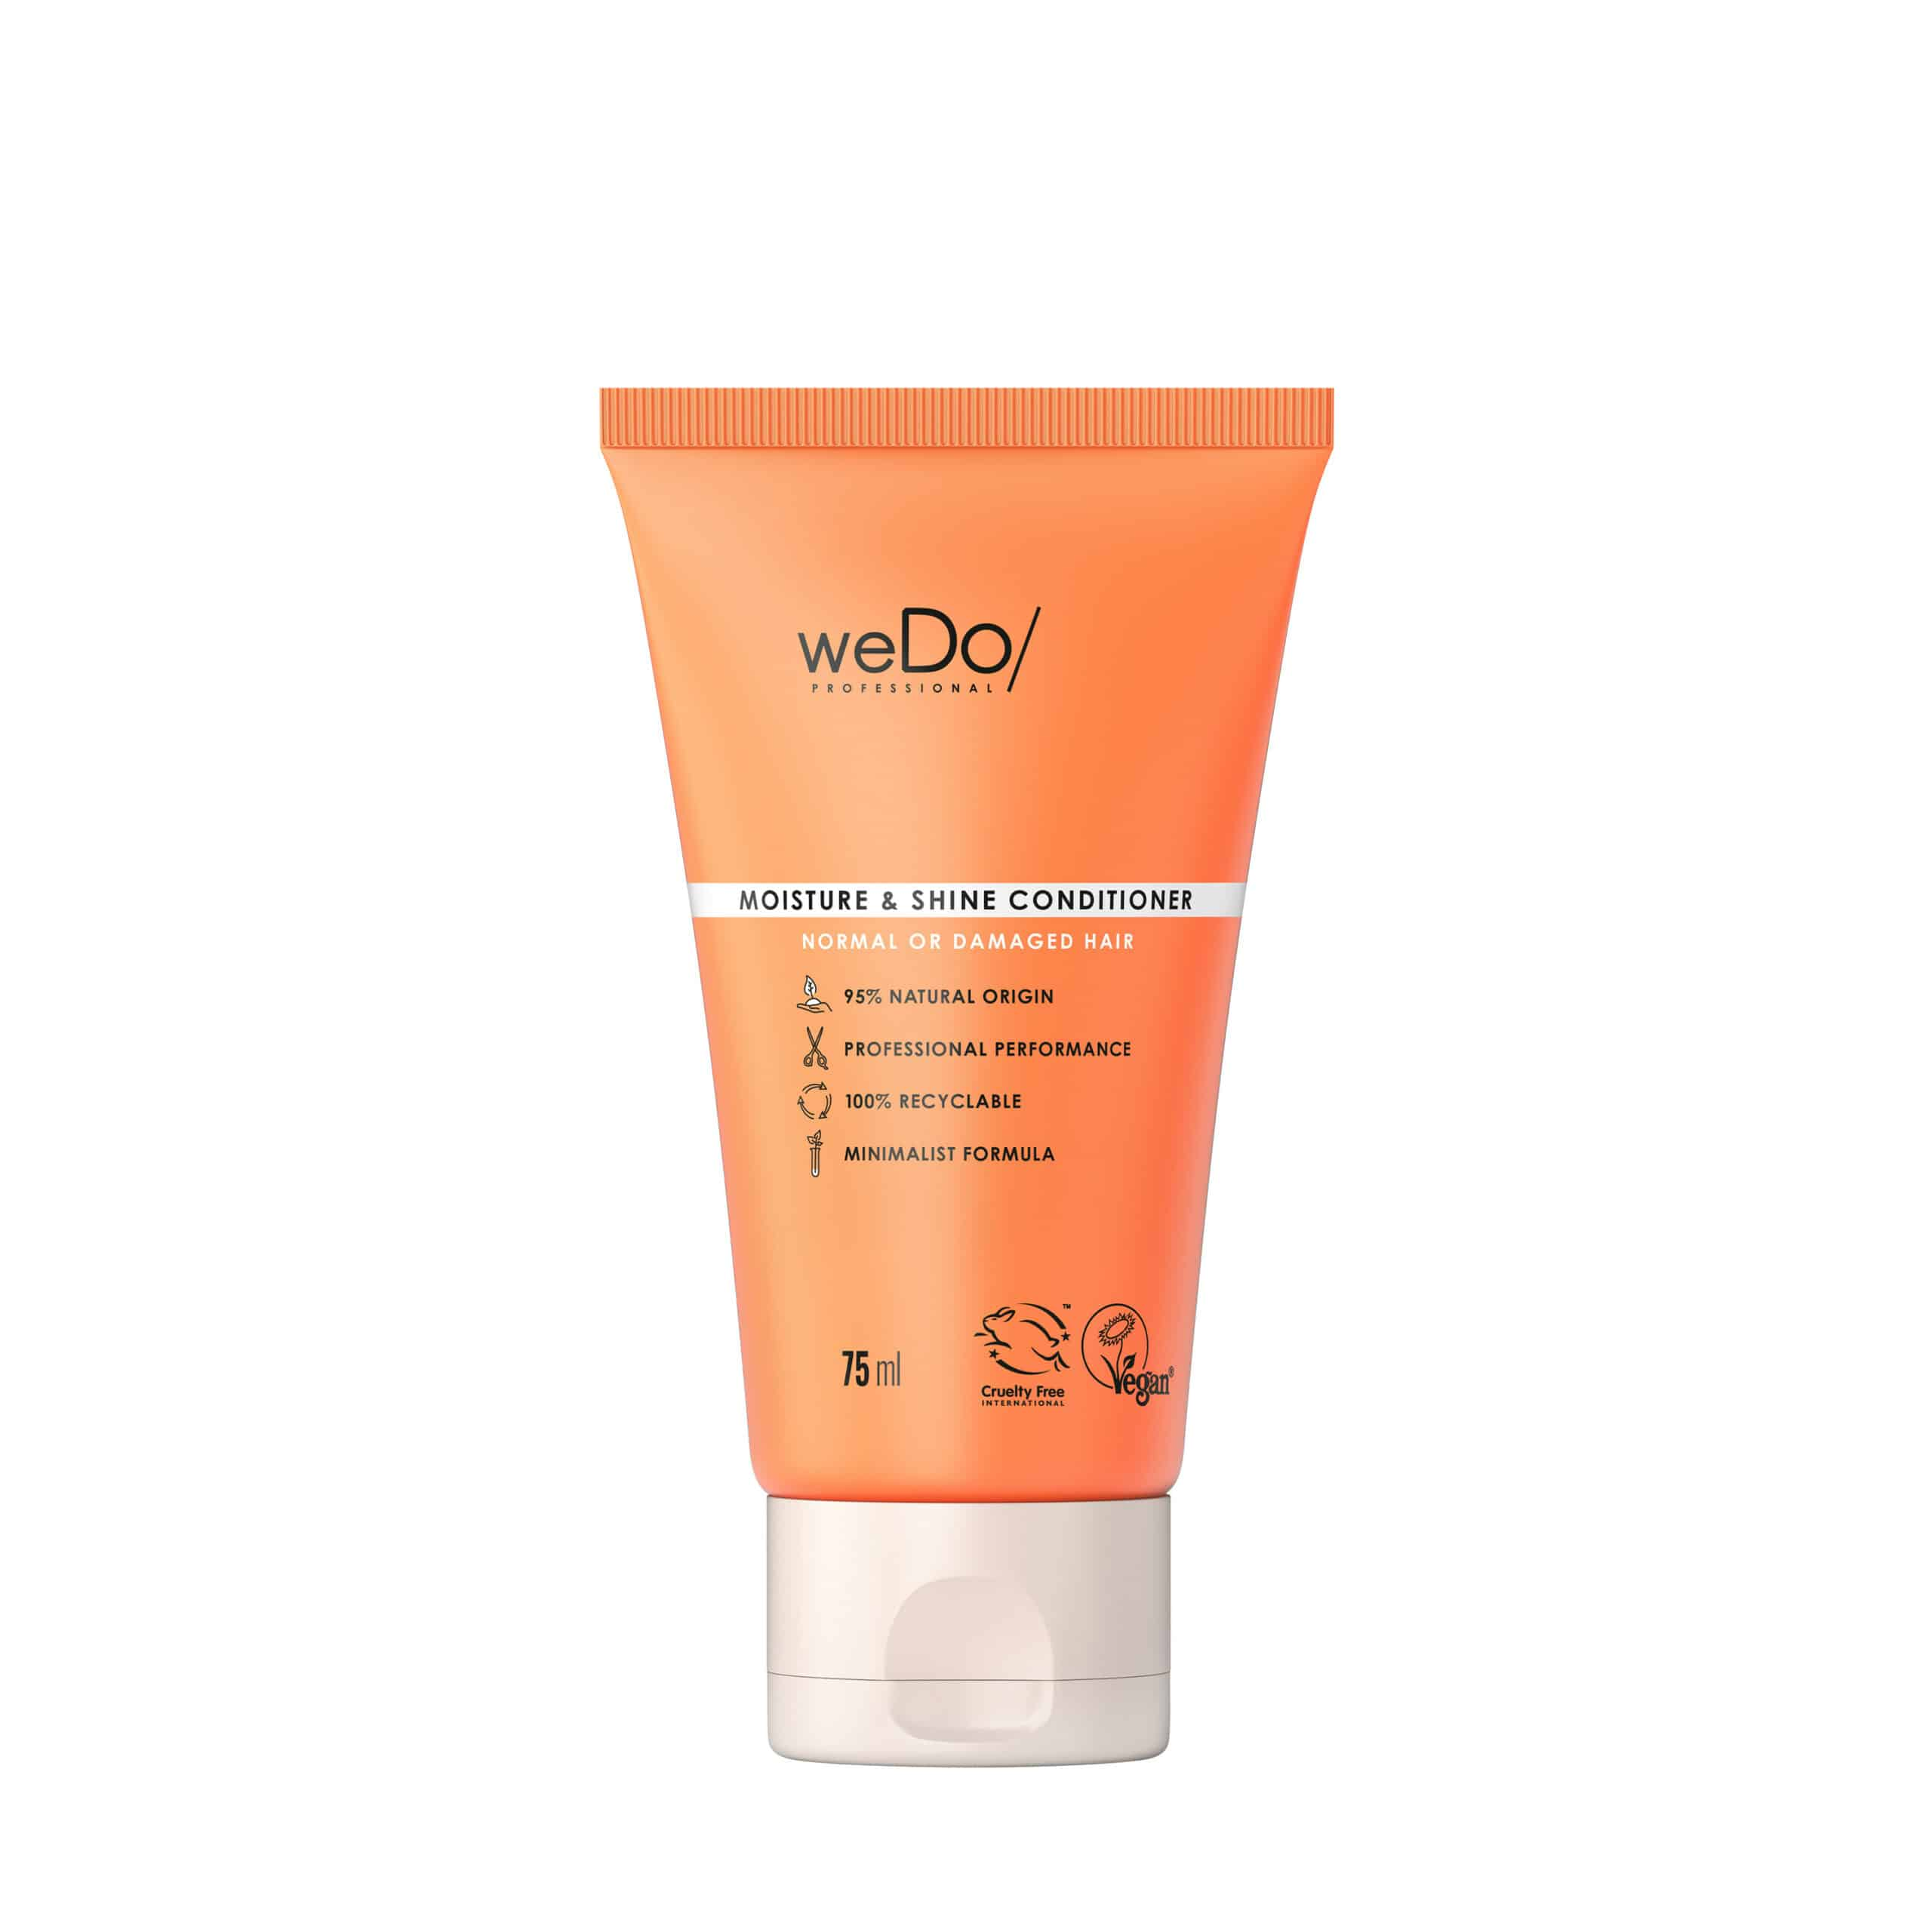 JPG_HighRes-Wedo_Conditioner_75ml_Moisture-Shine_3614229705188_8011-масштабированный